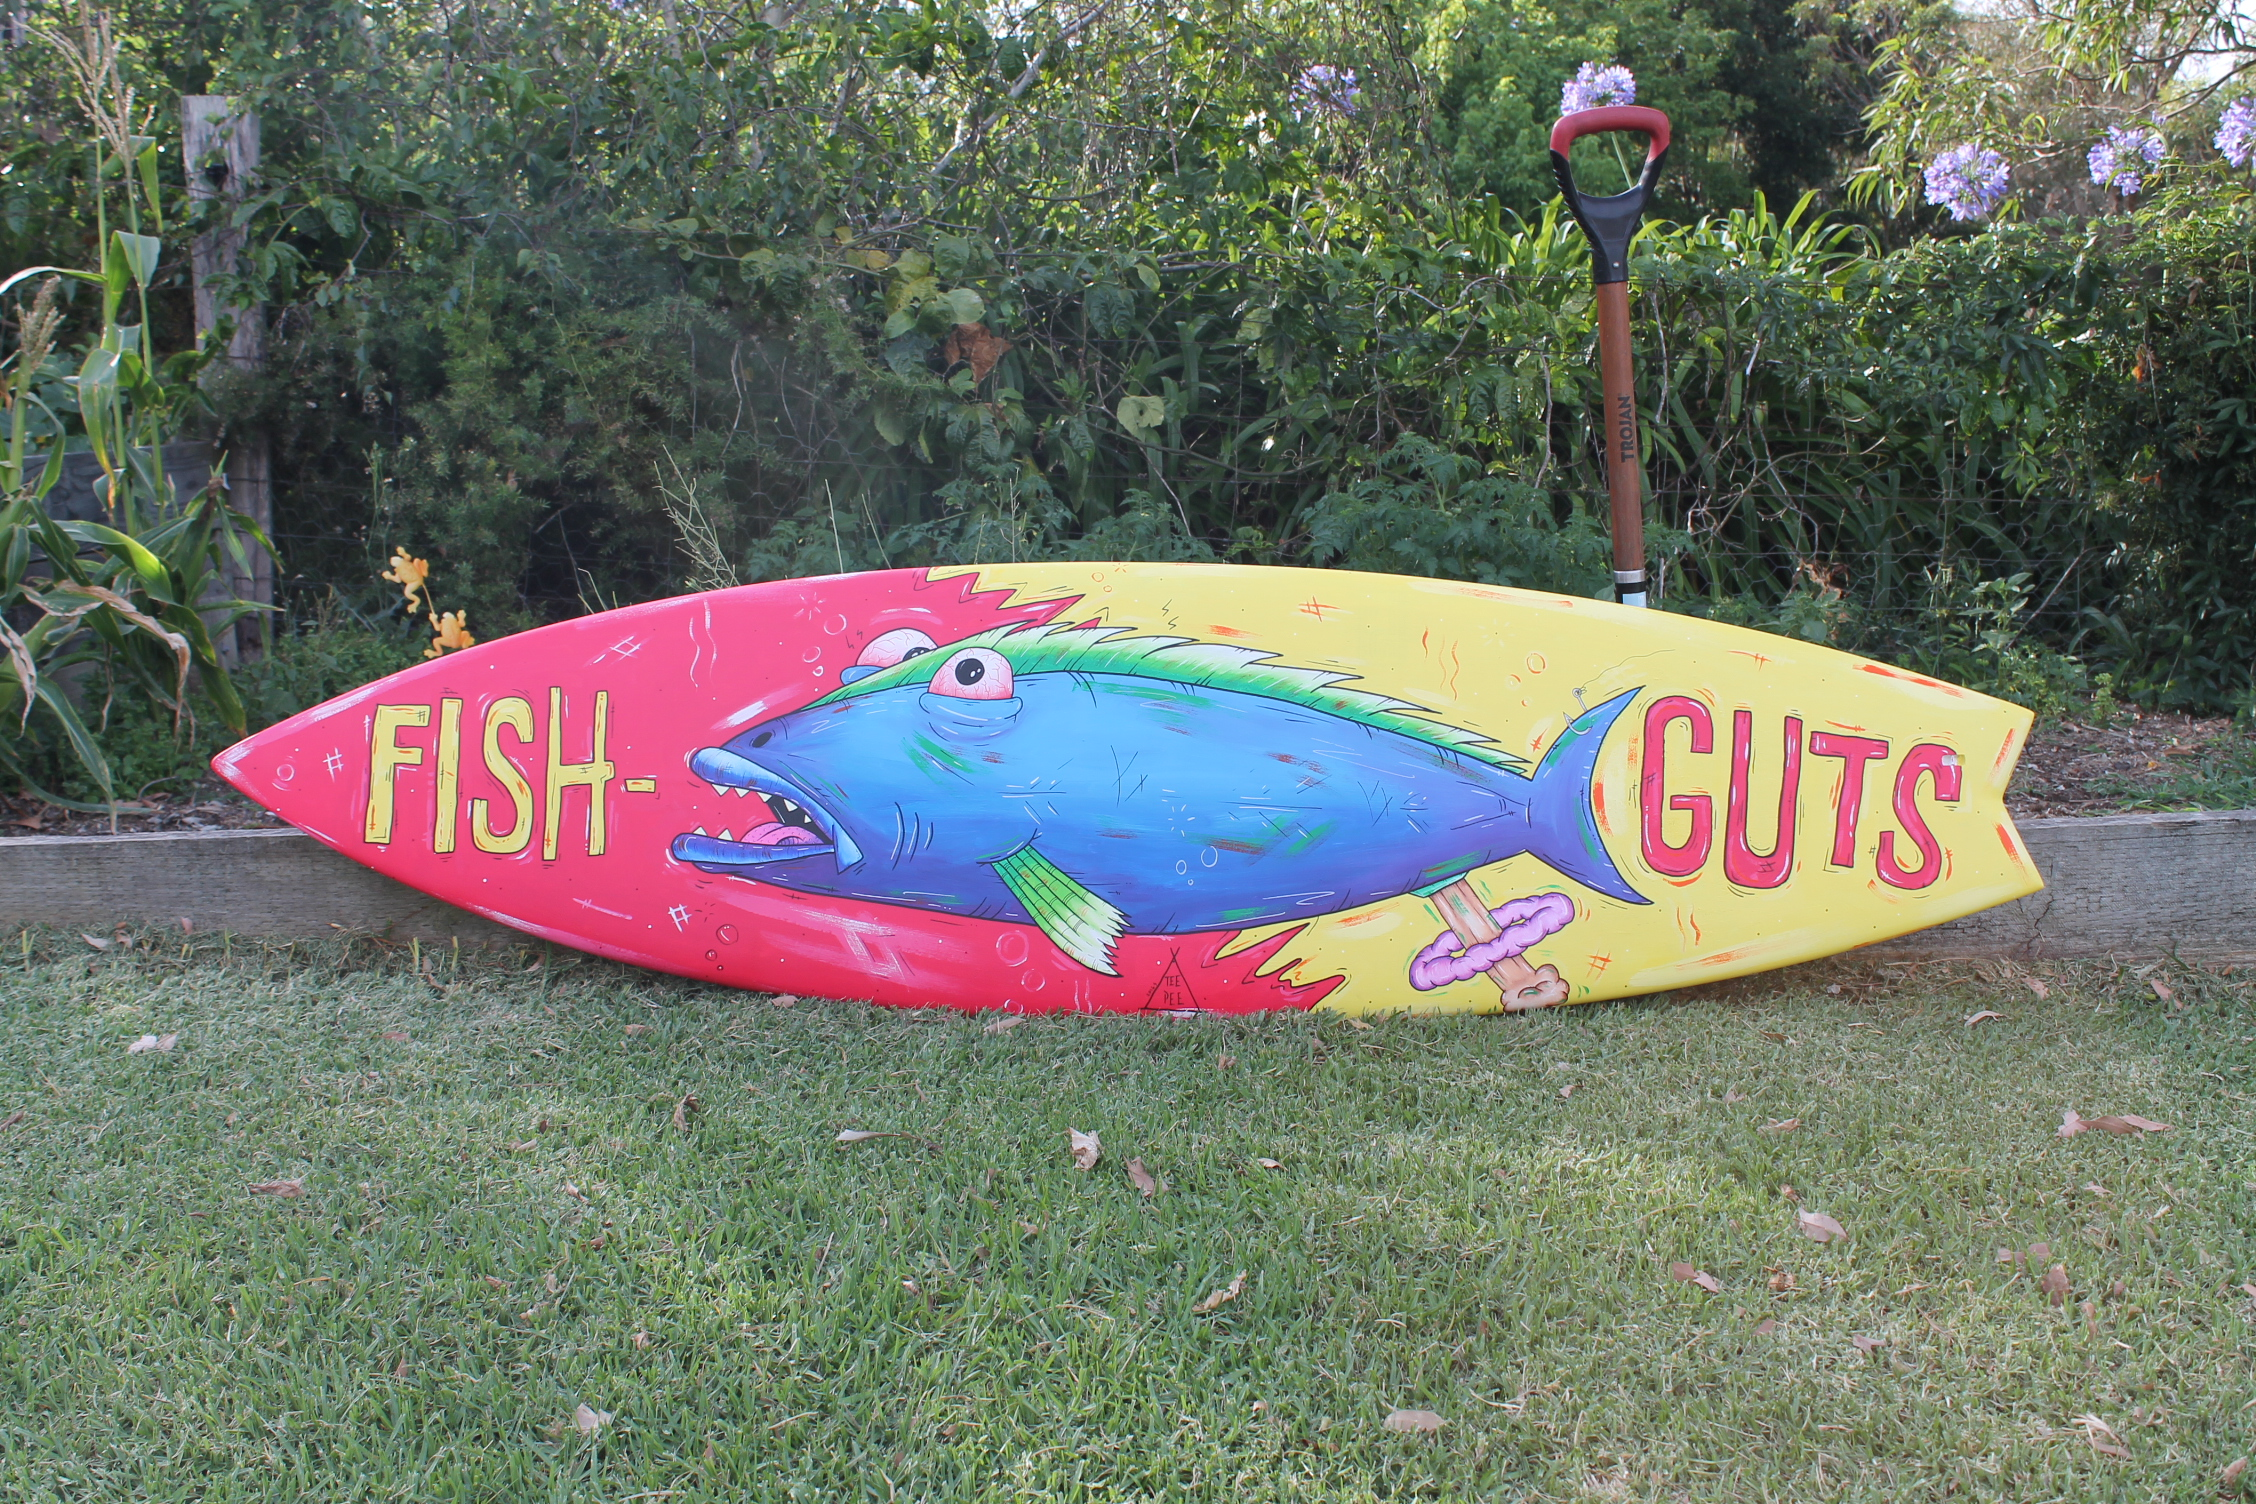 Fish-Guts Surfboard